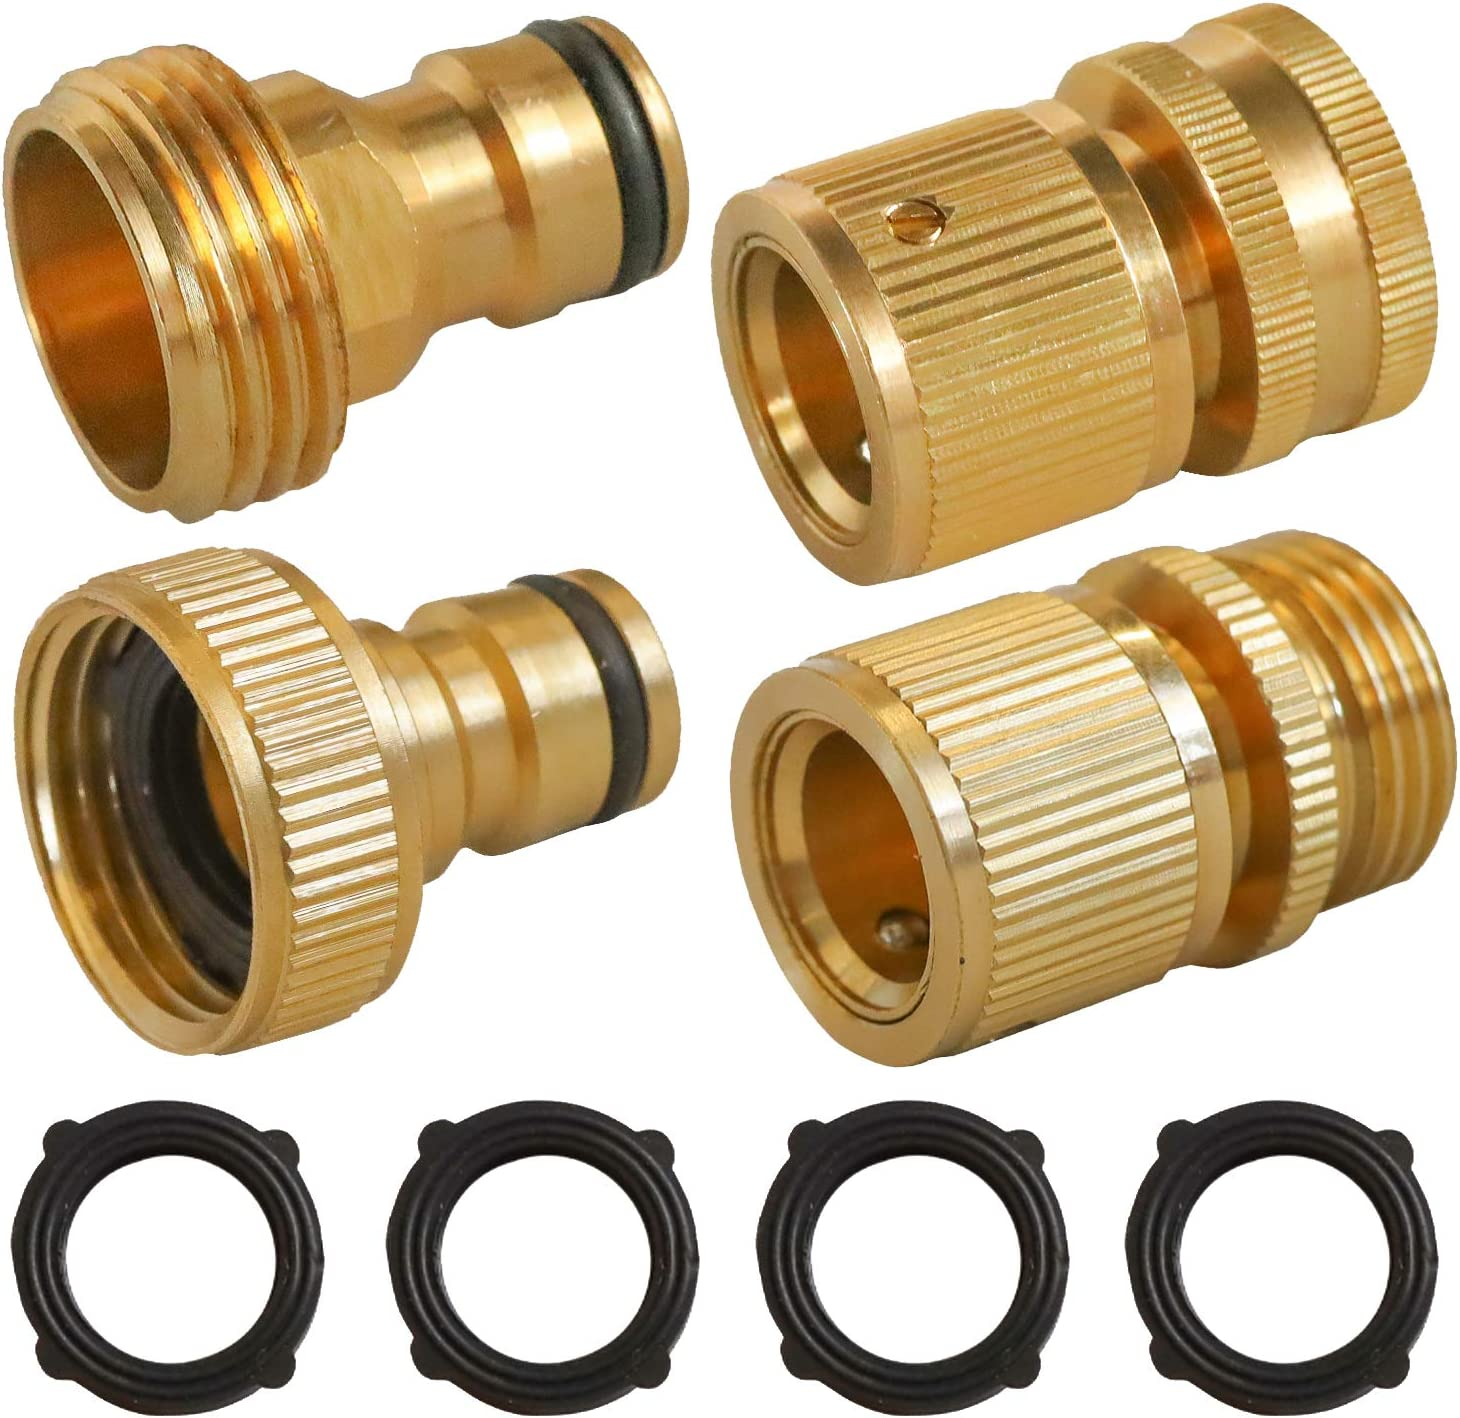 Hourleey Garden Hose Quick Connect, 3/4 Inch Solid Brass Female and Male Connectors to Brass Female and Male Nipples Garden Hose Fitting Water Hose Connectors